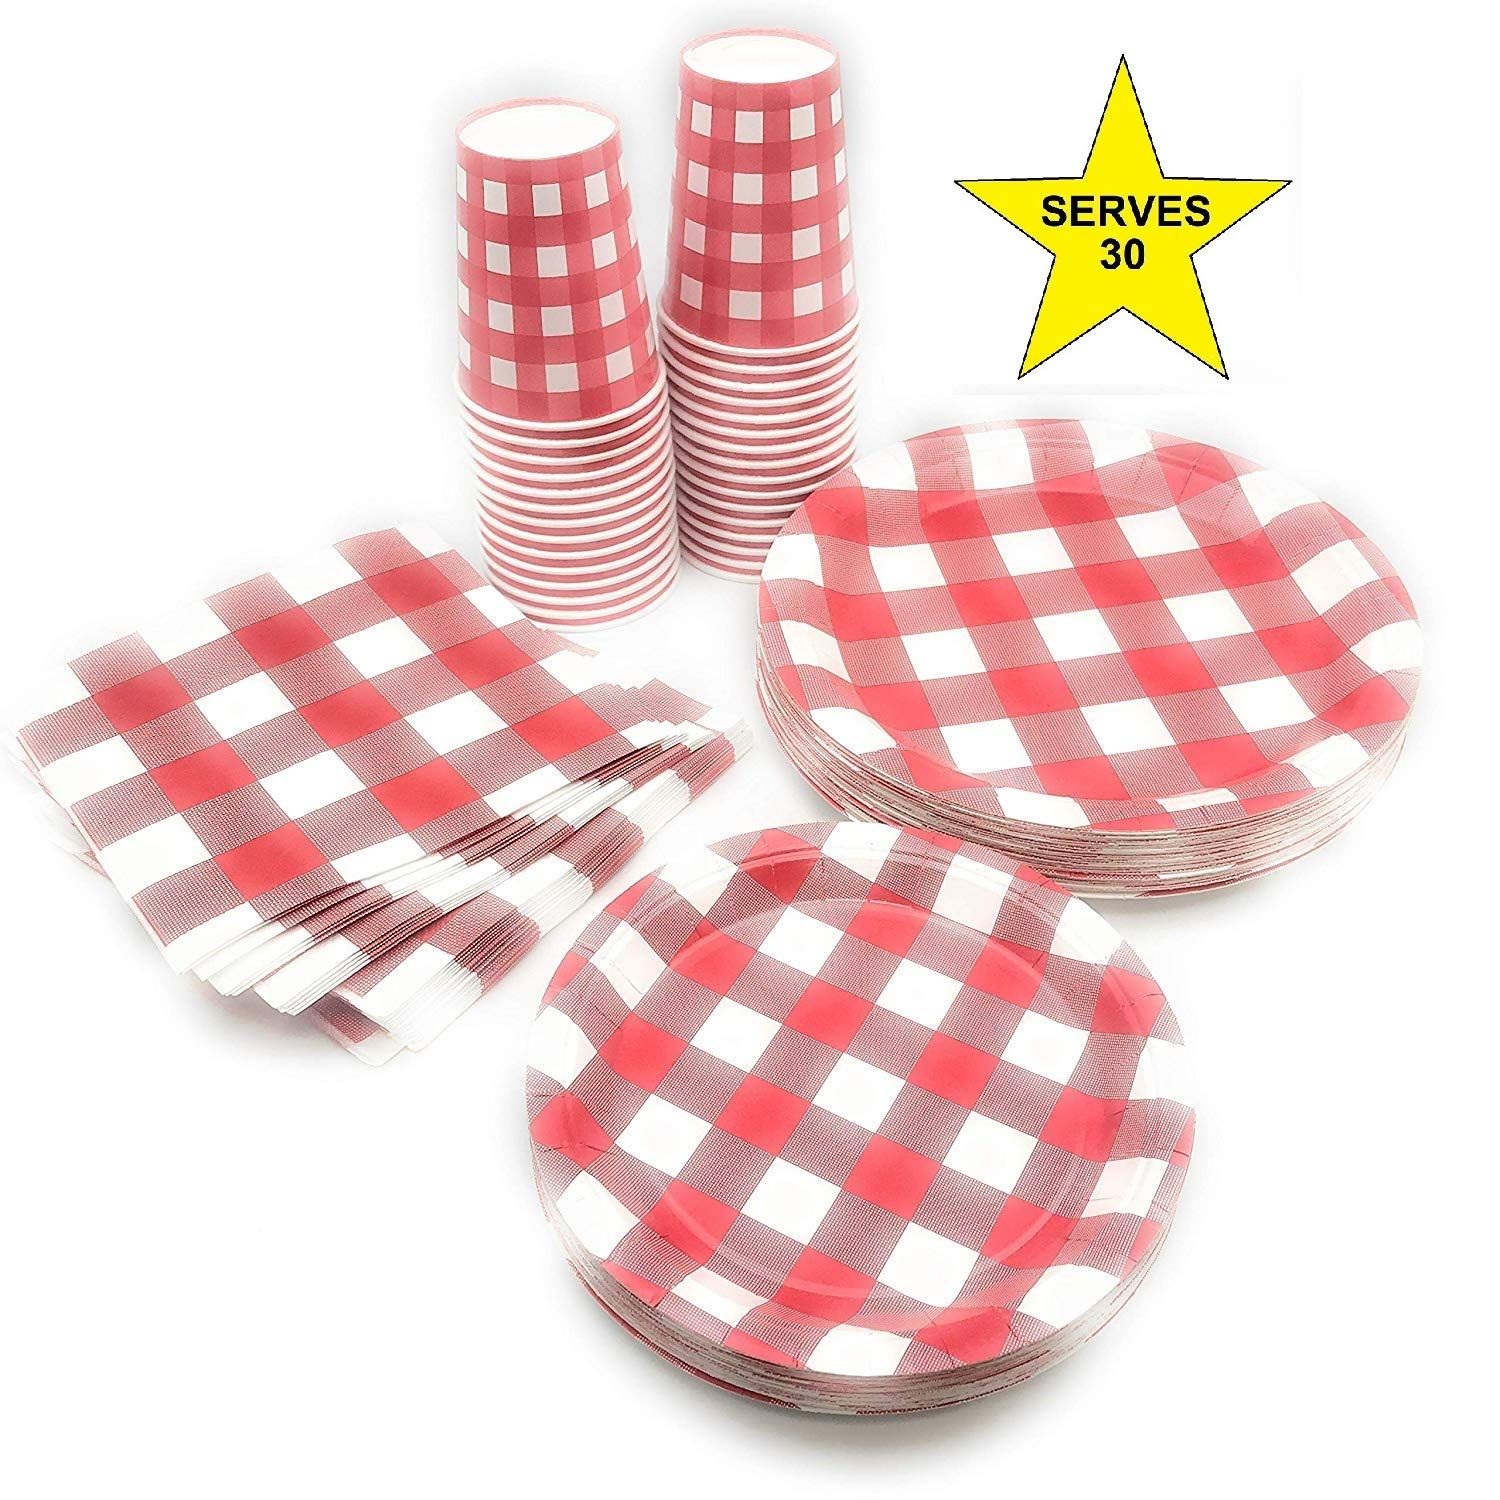 Serves 30   Complete Party Pack   Red Gingham   9' Dinner Plates   7' Dessert Plates   9 oz Cups   3 Ply Napkins   Picnic and Barnyard Party Theme